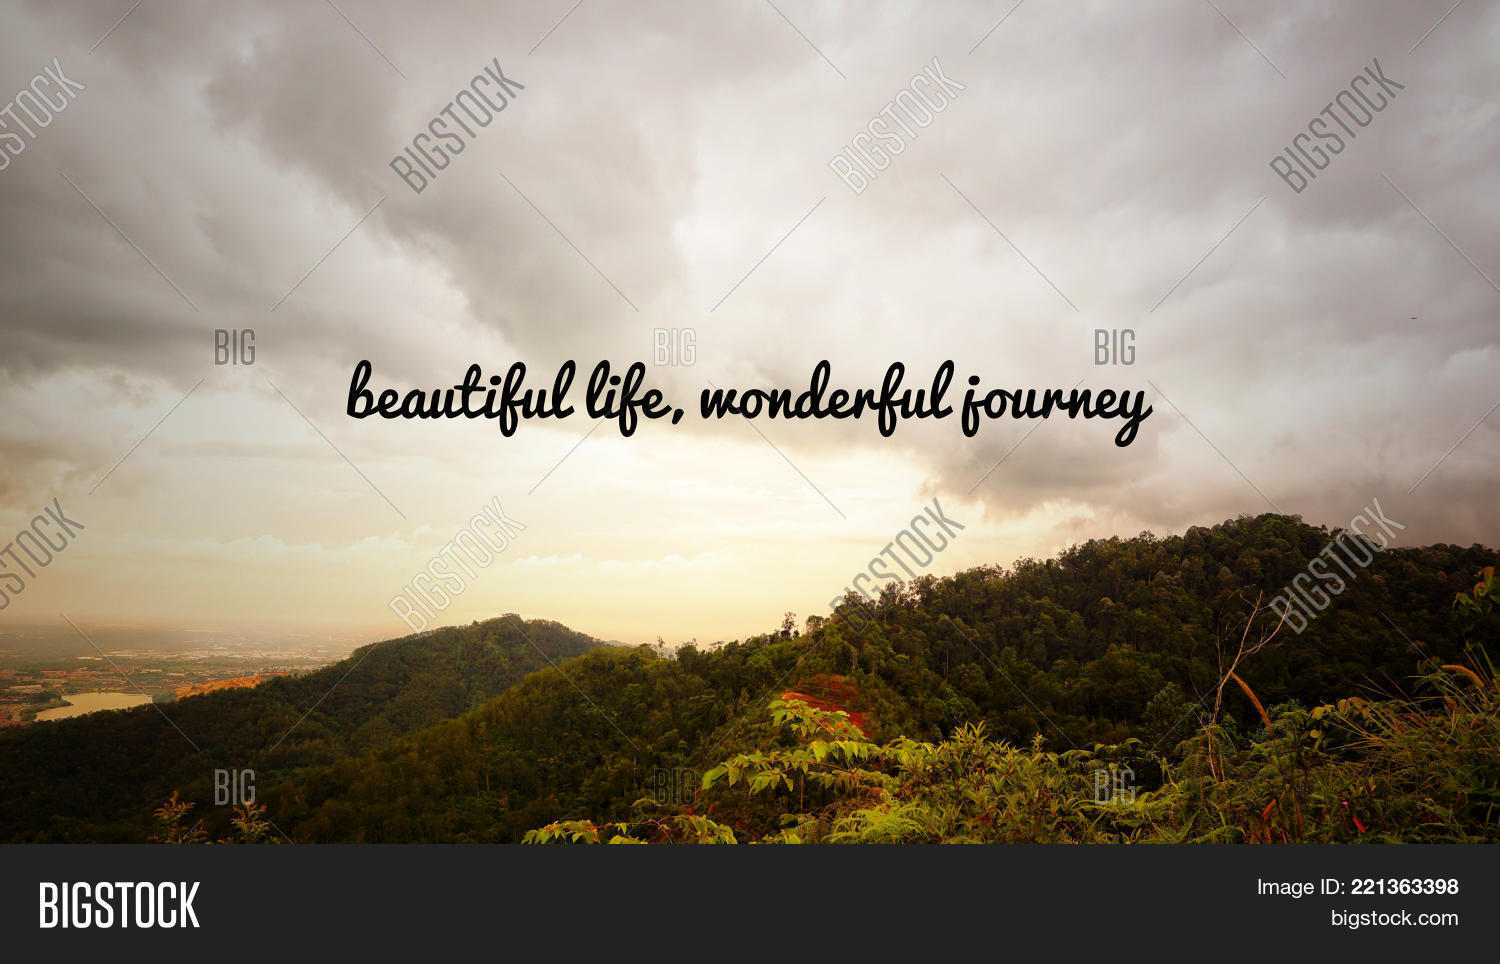 Image of: Life Motivational And Inspirational Quotes Beautiful Life Wonderful Journey With Vintage Styled Background Bigstock Afbeelding En Foto gratis Proefversie Bigstock